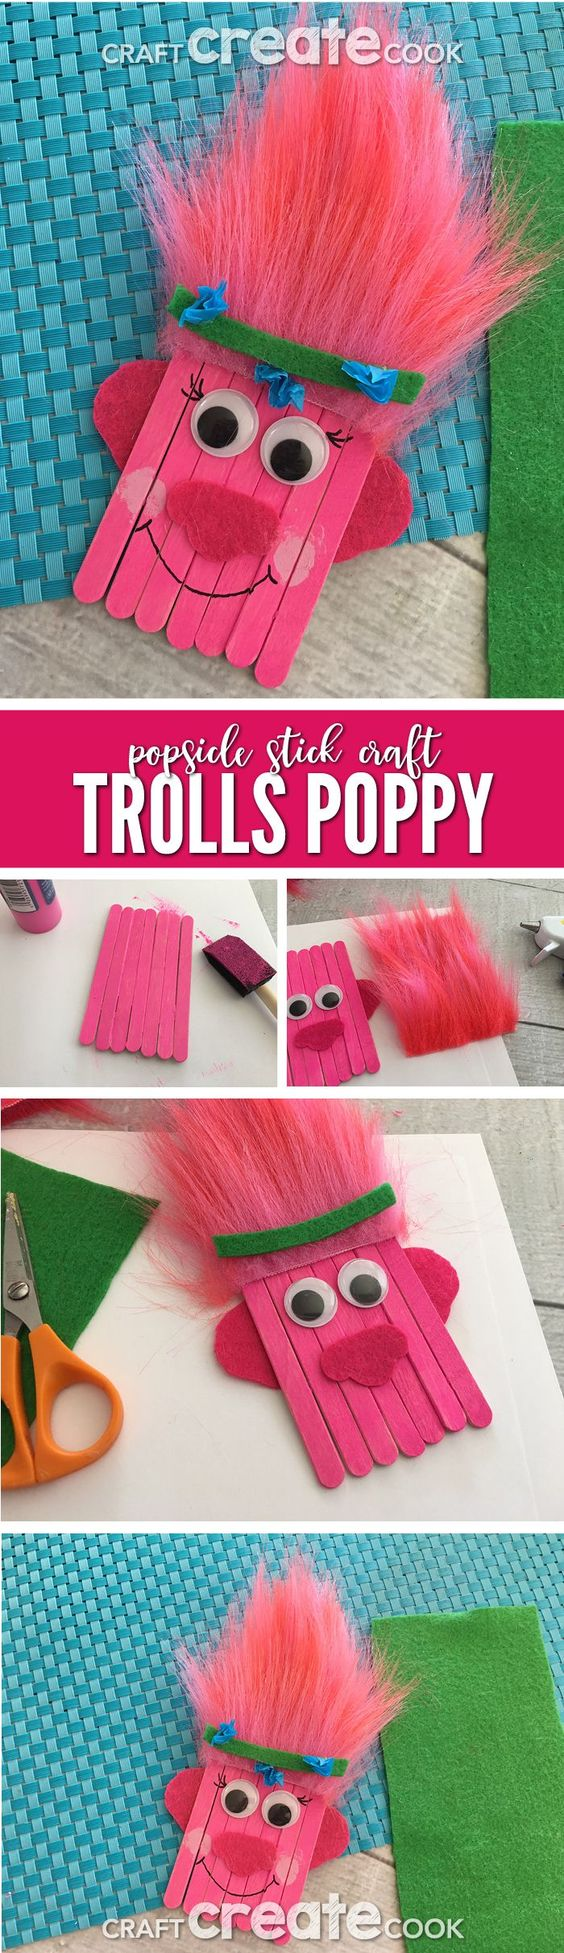 Trolls Poppy Popsicle Stick Craft for Kids.